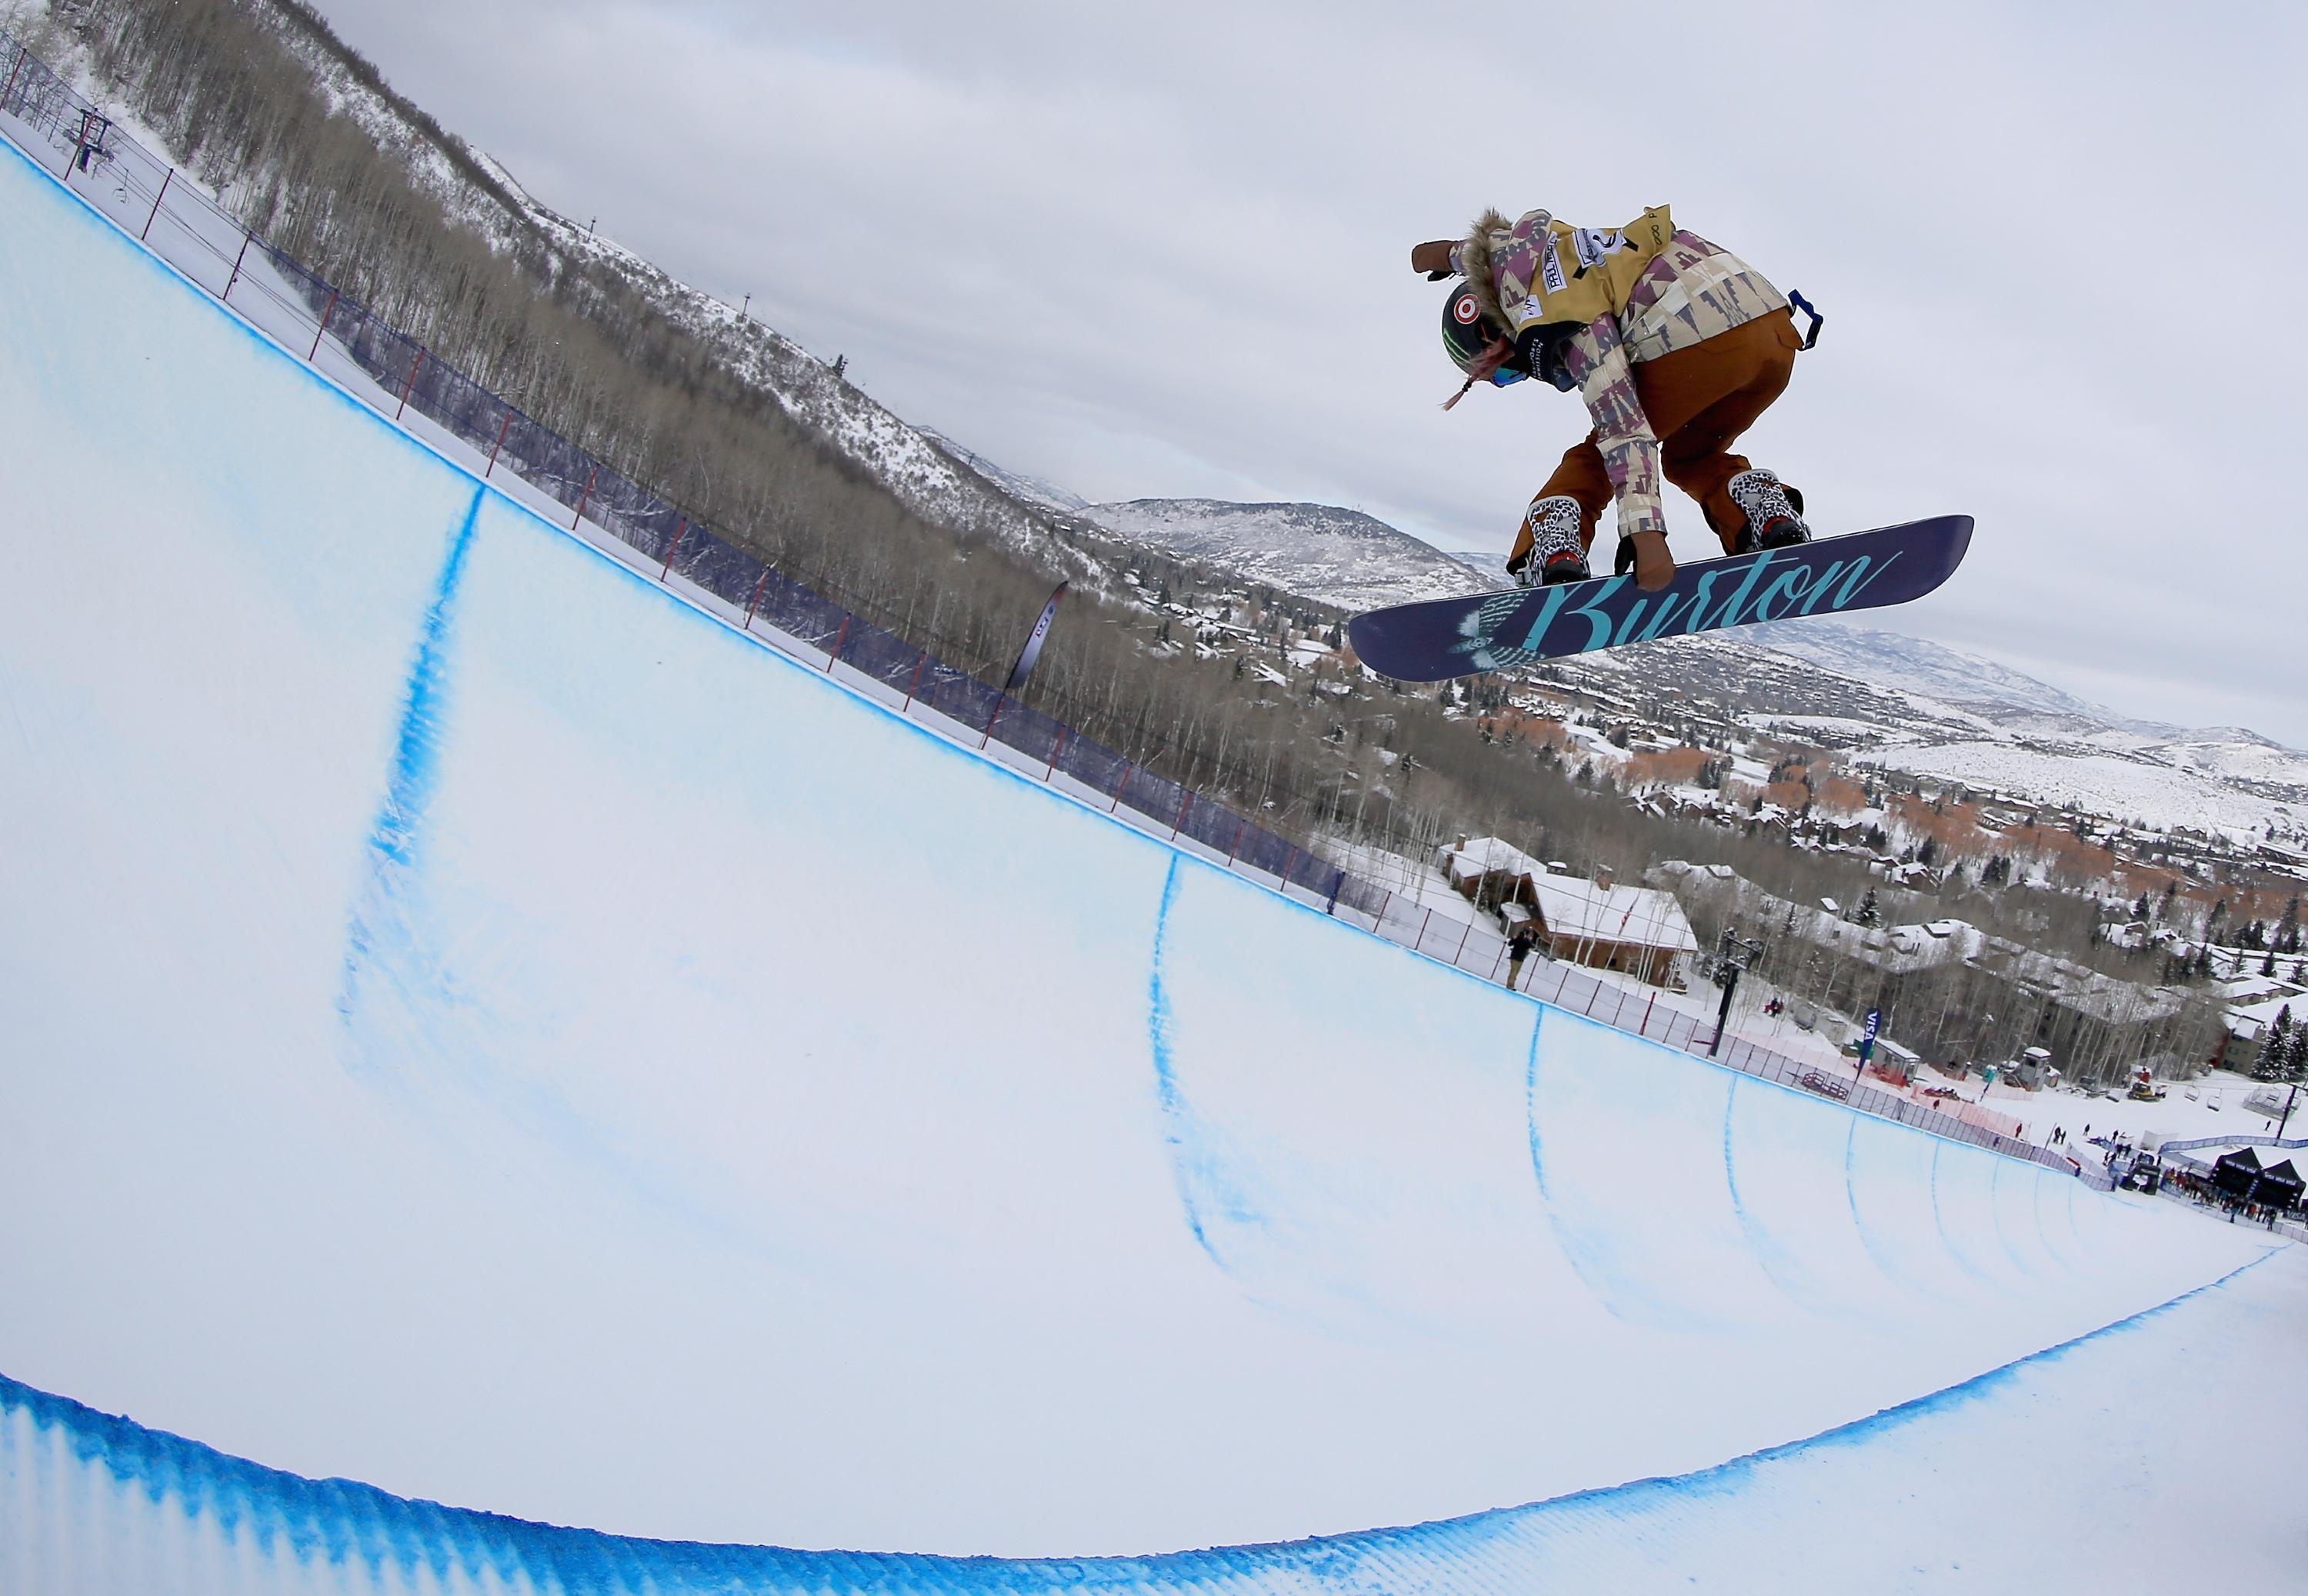 Chloe Kim lands back-to-back 1080s, scores perfect 100 (video)